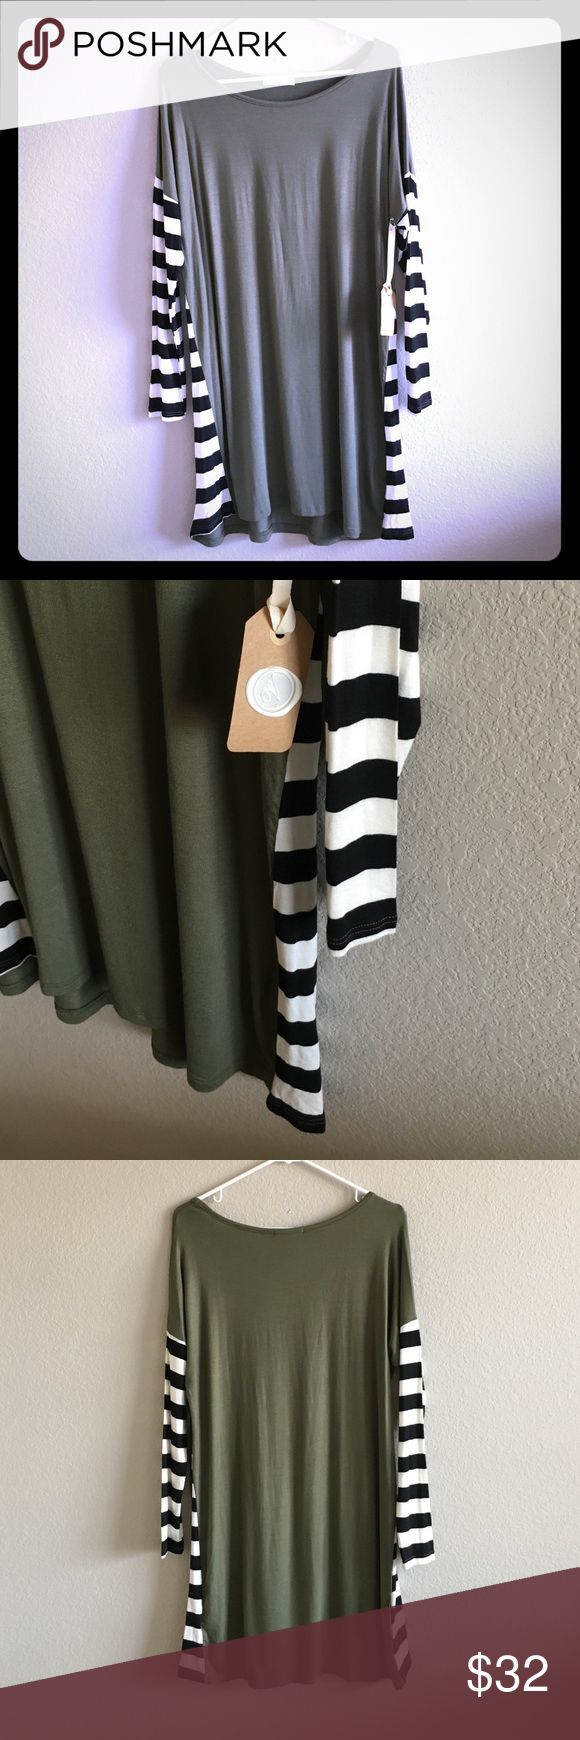 Spotted while shopping on Poshmark: ONLY 2 LEFT IN STOCK!! Striped Sleeve Dress! #poshmark #fashion #shopping #style #VMR Clothing #Dresses & Skirts